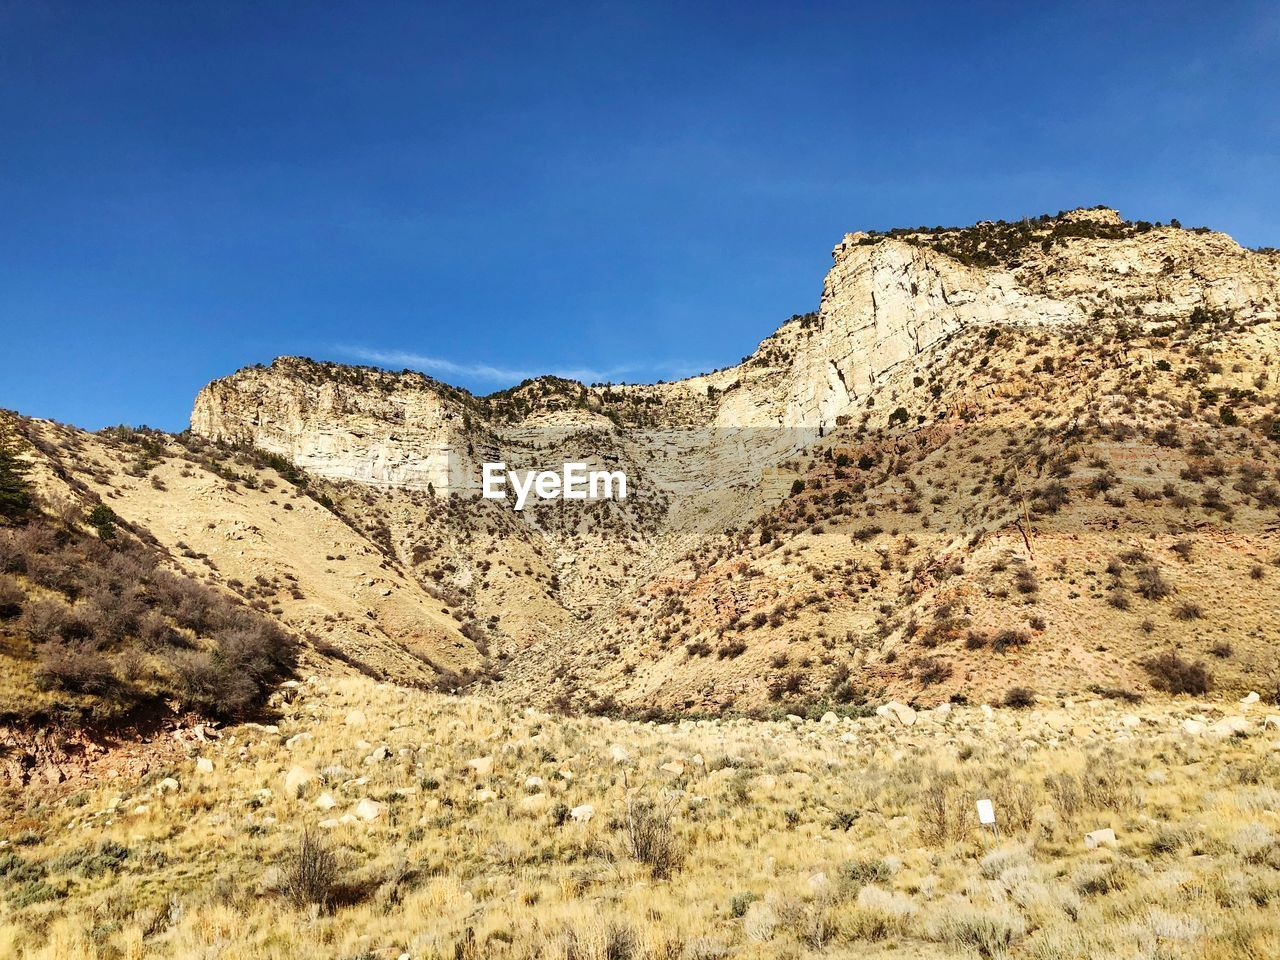 sky, blue, mountain, tranquil scene, beauty in nature, nature, clear sky, rock, scenics - nature, tranquility, rock formation, day, no people, environment, sunlight, rock - object, mountain range, non-urban scene, solid, low angle view, formation, arid climate, outdoors, climate, eroded, mountain peak